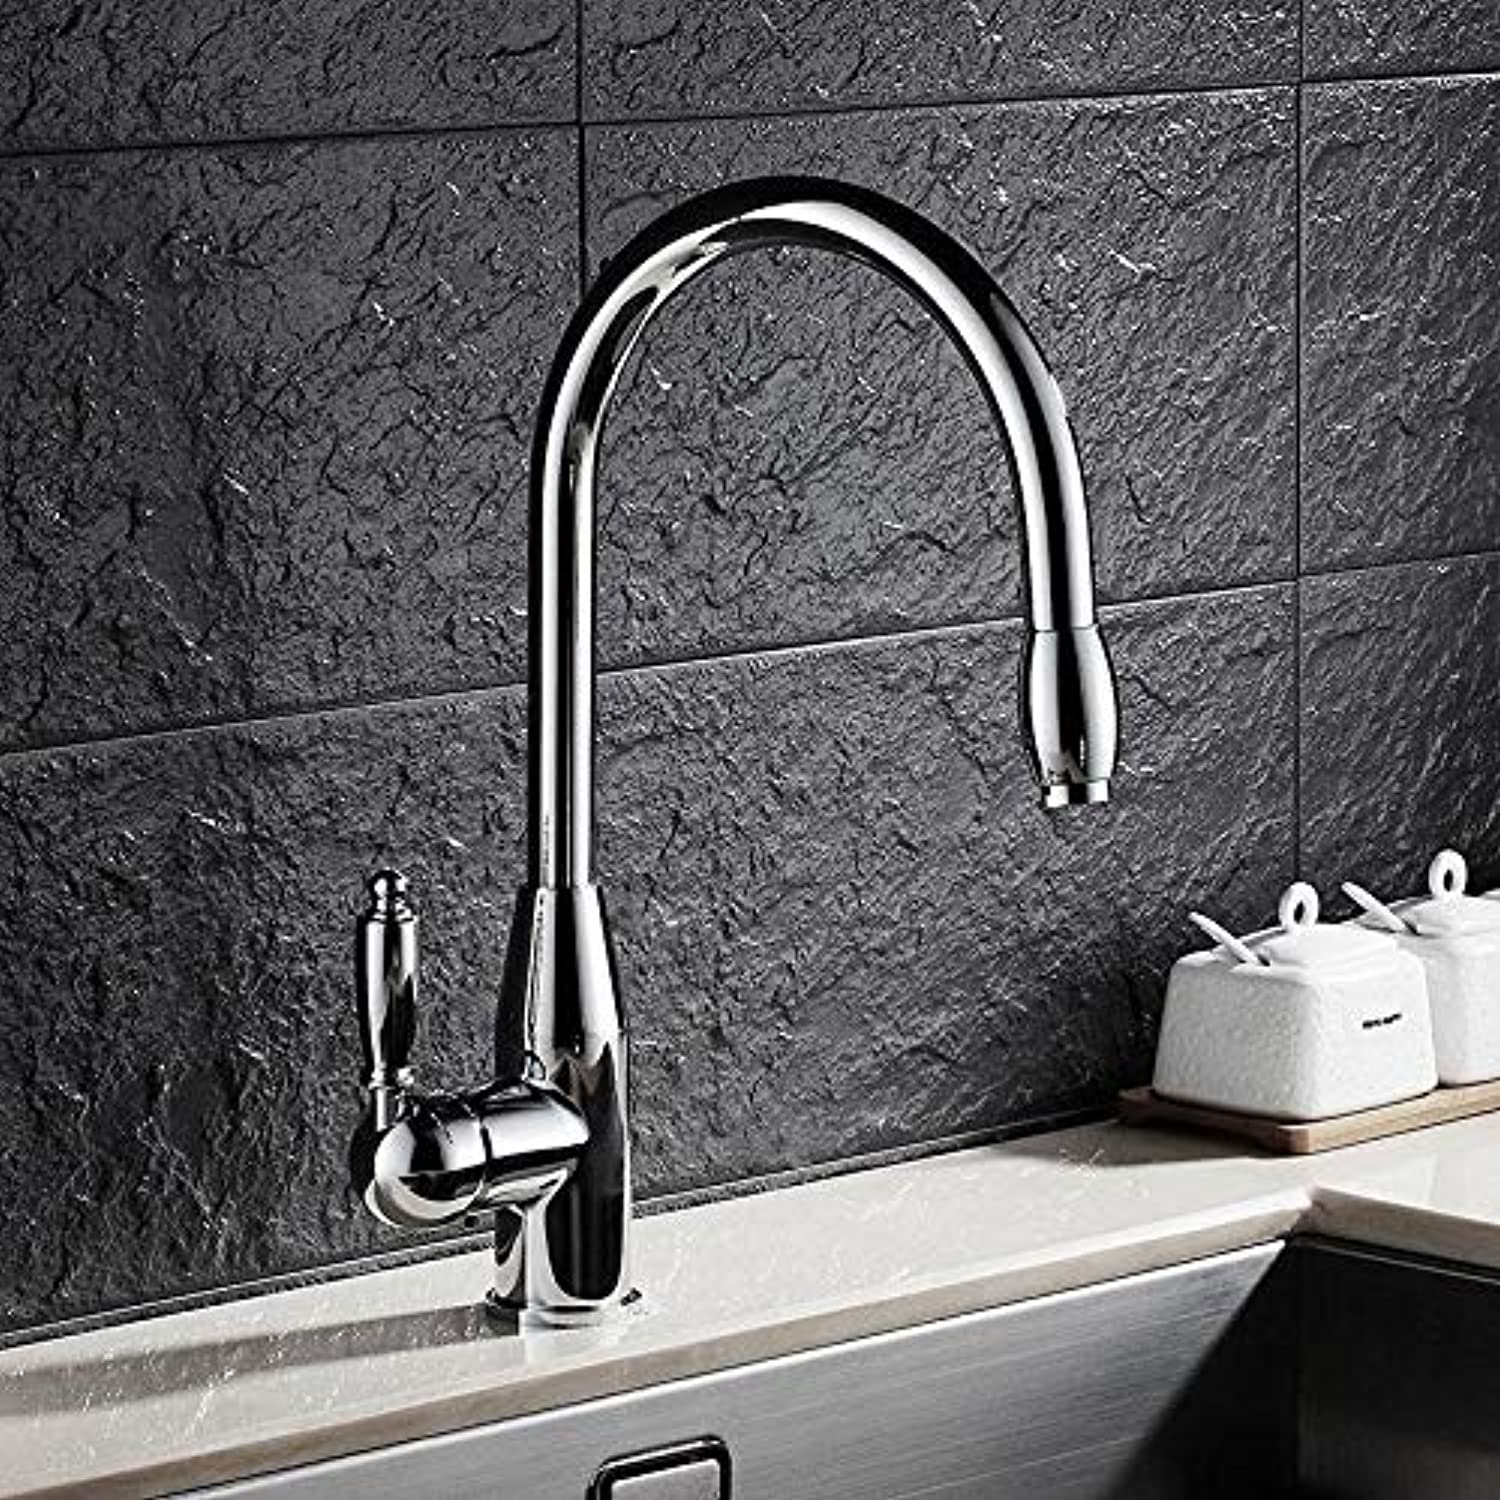 Taps Faucet Wash Basin Faucet redating Hot and Cold Kitchen Sink Faucet